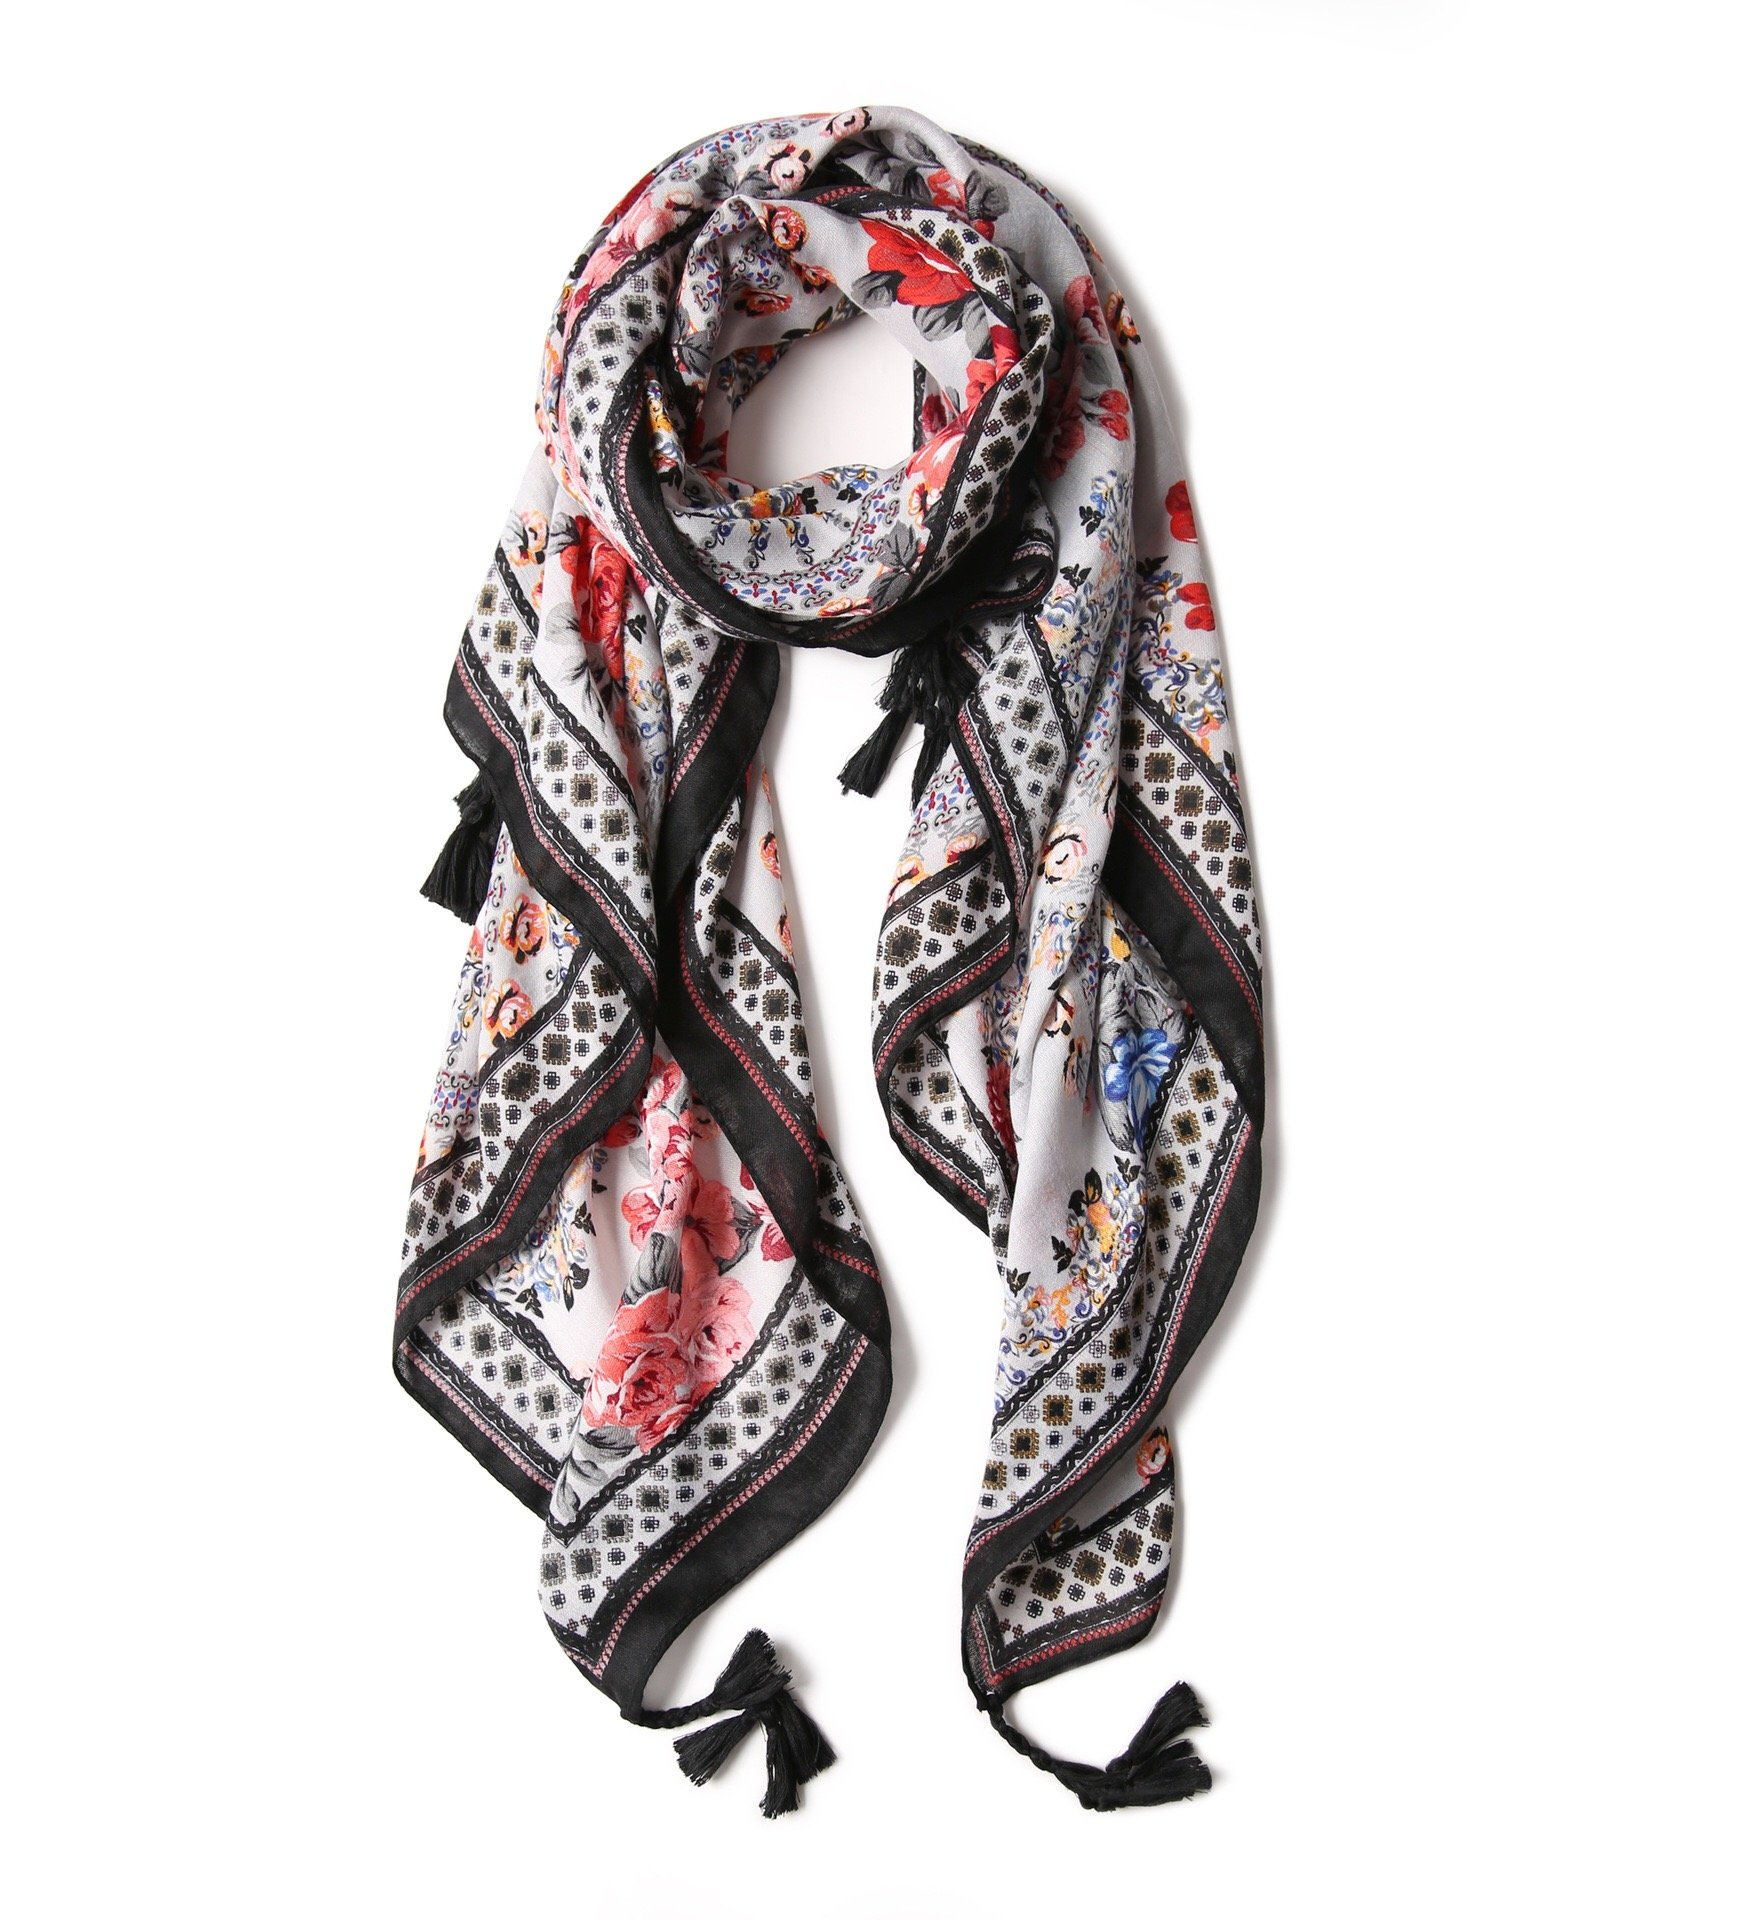 Light weight Large Scarf / Shawl Scarves And Wraps For Women (Black Floral)